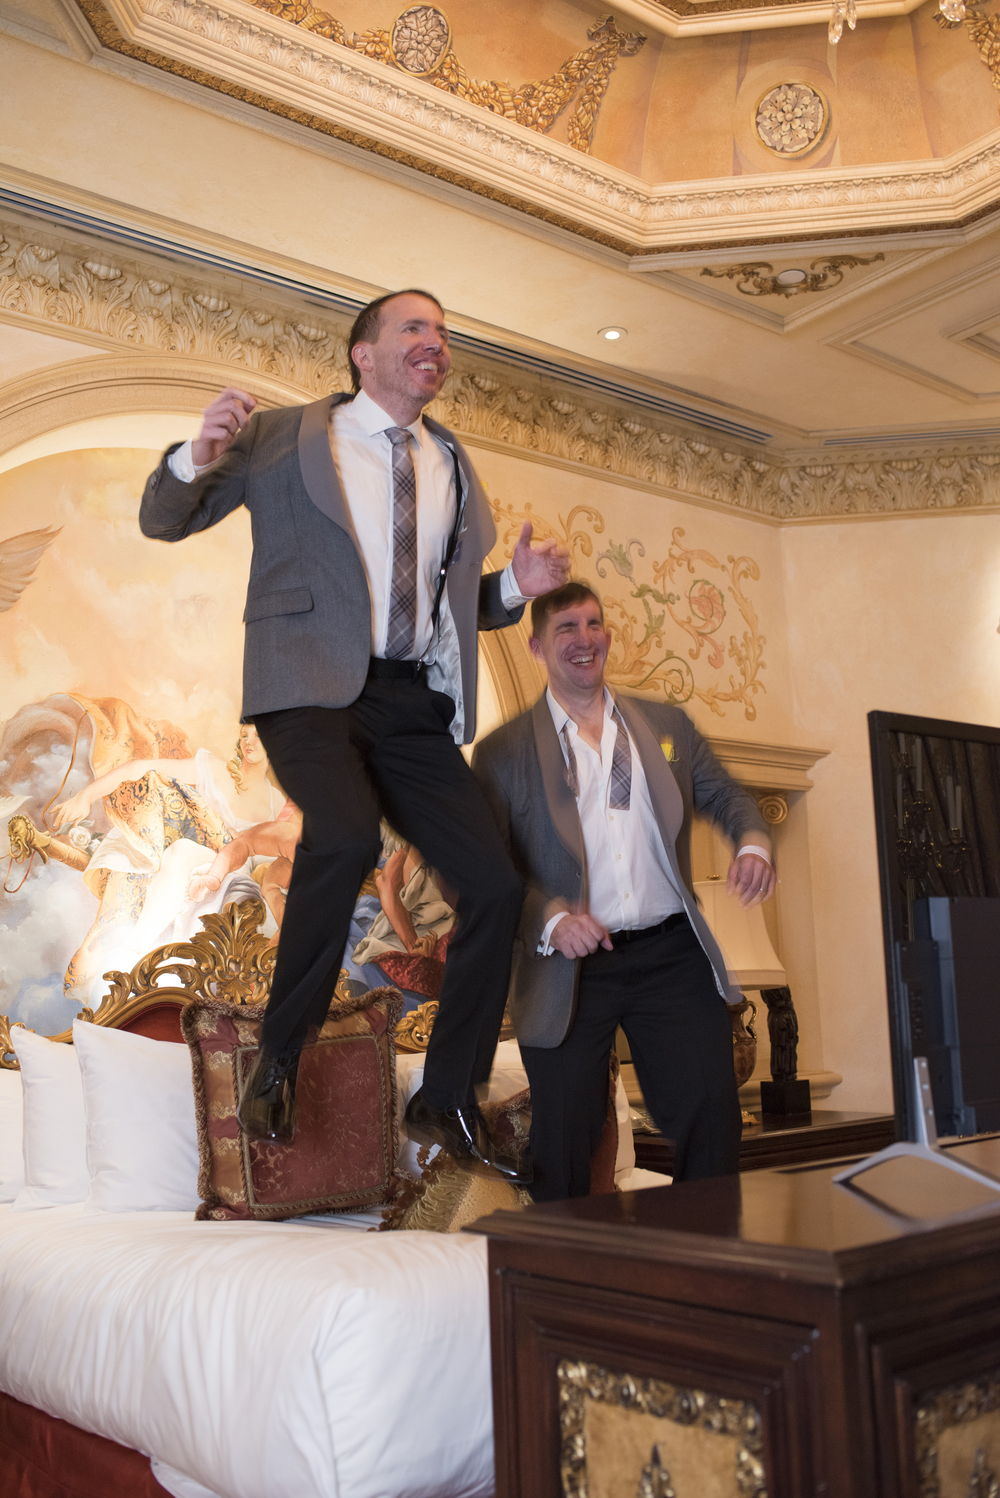 Two grooms jump on a bed.   Newlyweds Brian Sauls and Chris Mancini at their same-sex wedding in Las Vegas.  The vintage Vegas themed event was hosted in the Verona Suite of The Westgate.   Venue -  The Westgate   |  Las Vegas Wedding Planner & Event Design by  Andrea Eppolito   |  Photography by  AltF Photography   |  Videography by  Something New Films   |  Floral and Decor by  DBD Vegas   |  Live Art by  The Girl Who Drew You   |  Stationery by  Paper & Home